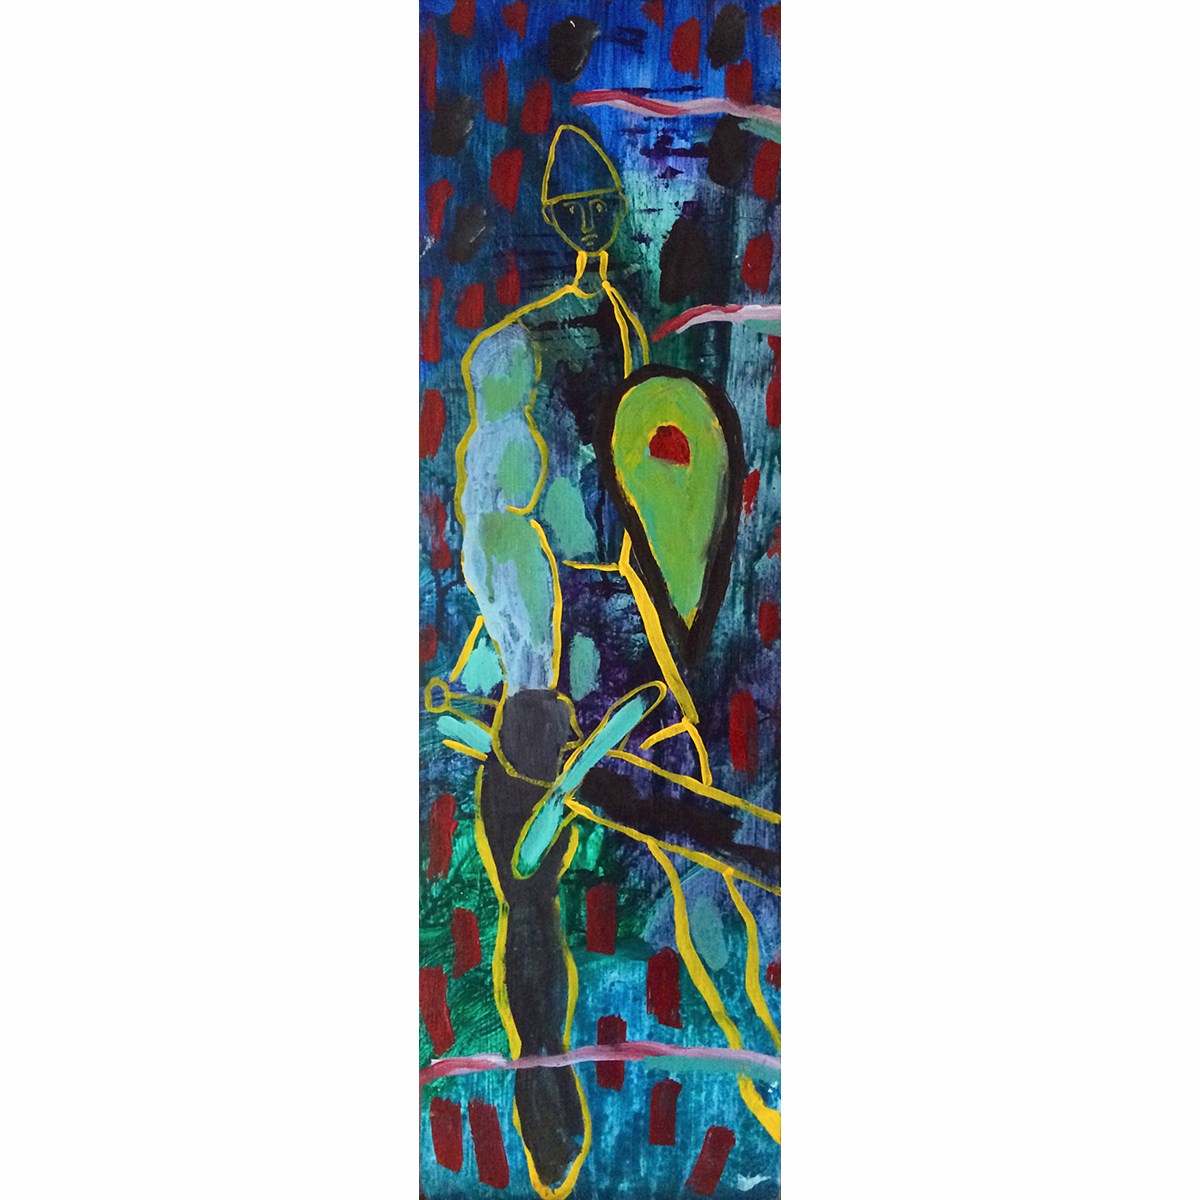 """MacLean Warrior"" Acrylic on Wood  24"" x 7"" 1995 $850  One of the Headstone Series, inspired by the carved capstones of clan burial sites in Scotland on Iona and elsewhere in the Highlands and Islands. This piece initially was exhibited in ""Where My Feet Stick to the Ground"" in Nashville at the Peanut Gallery."